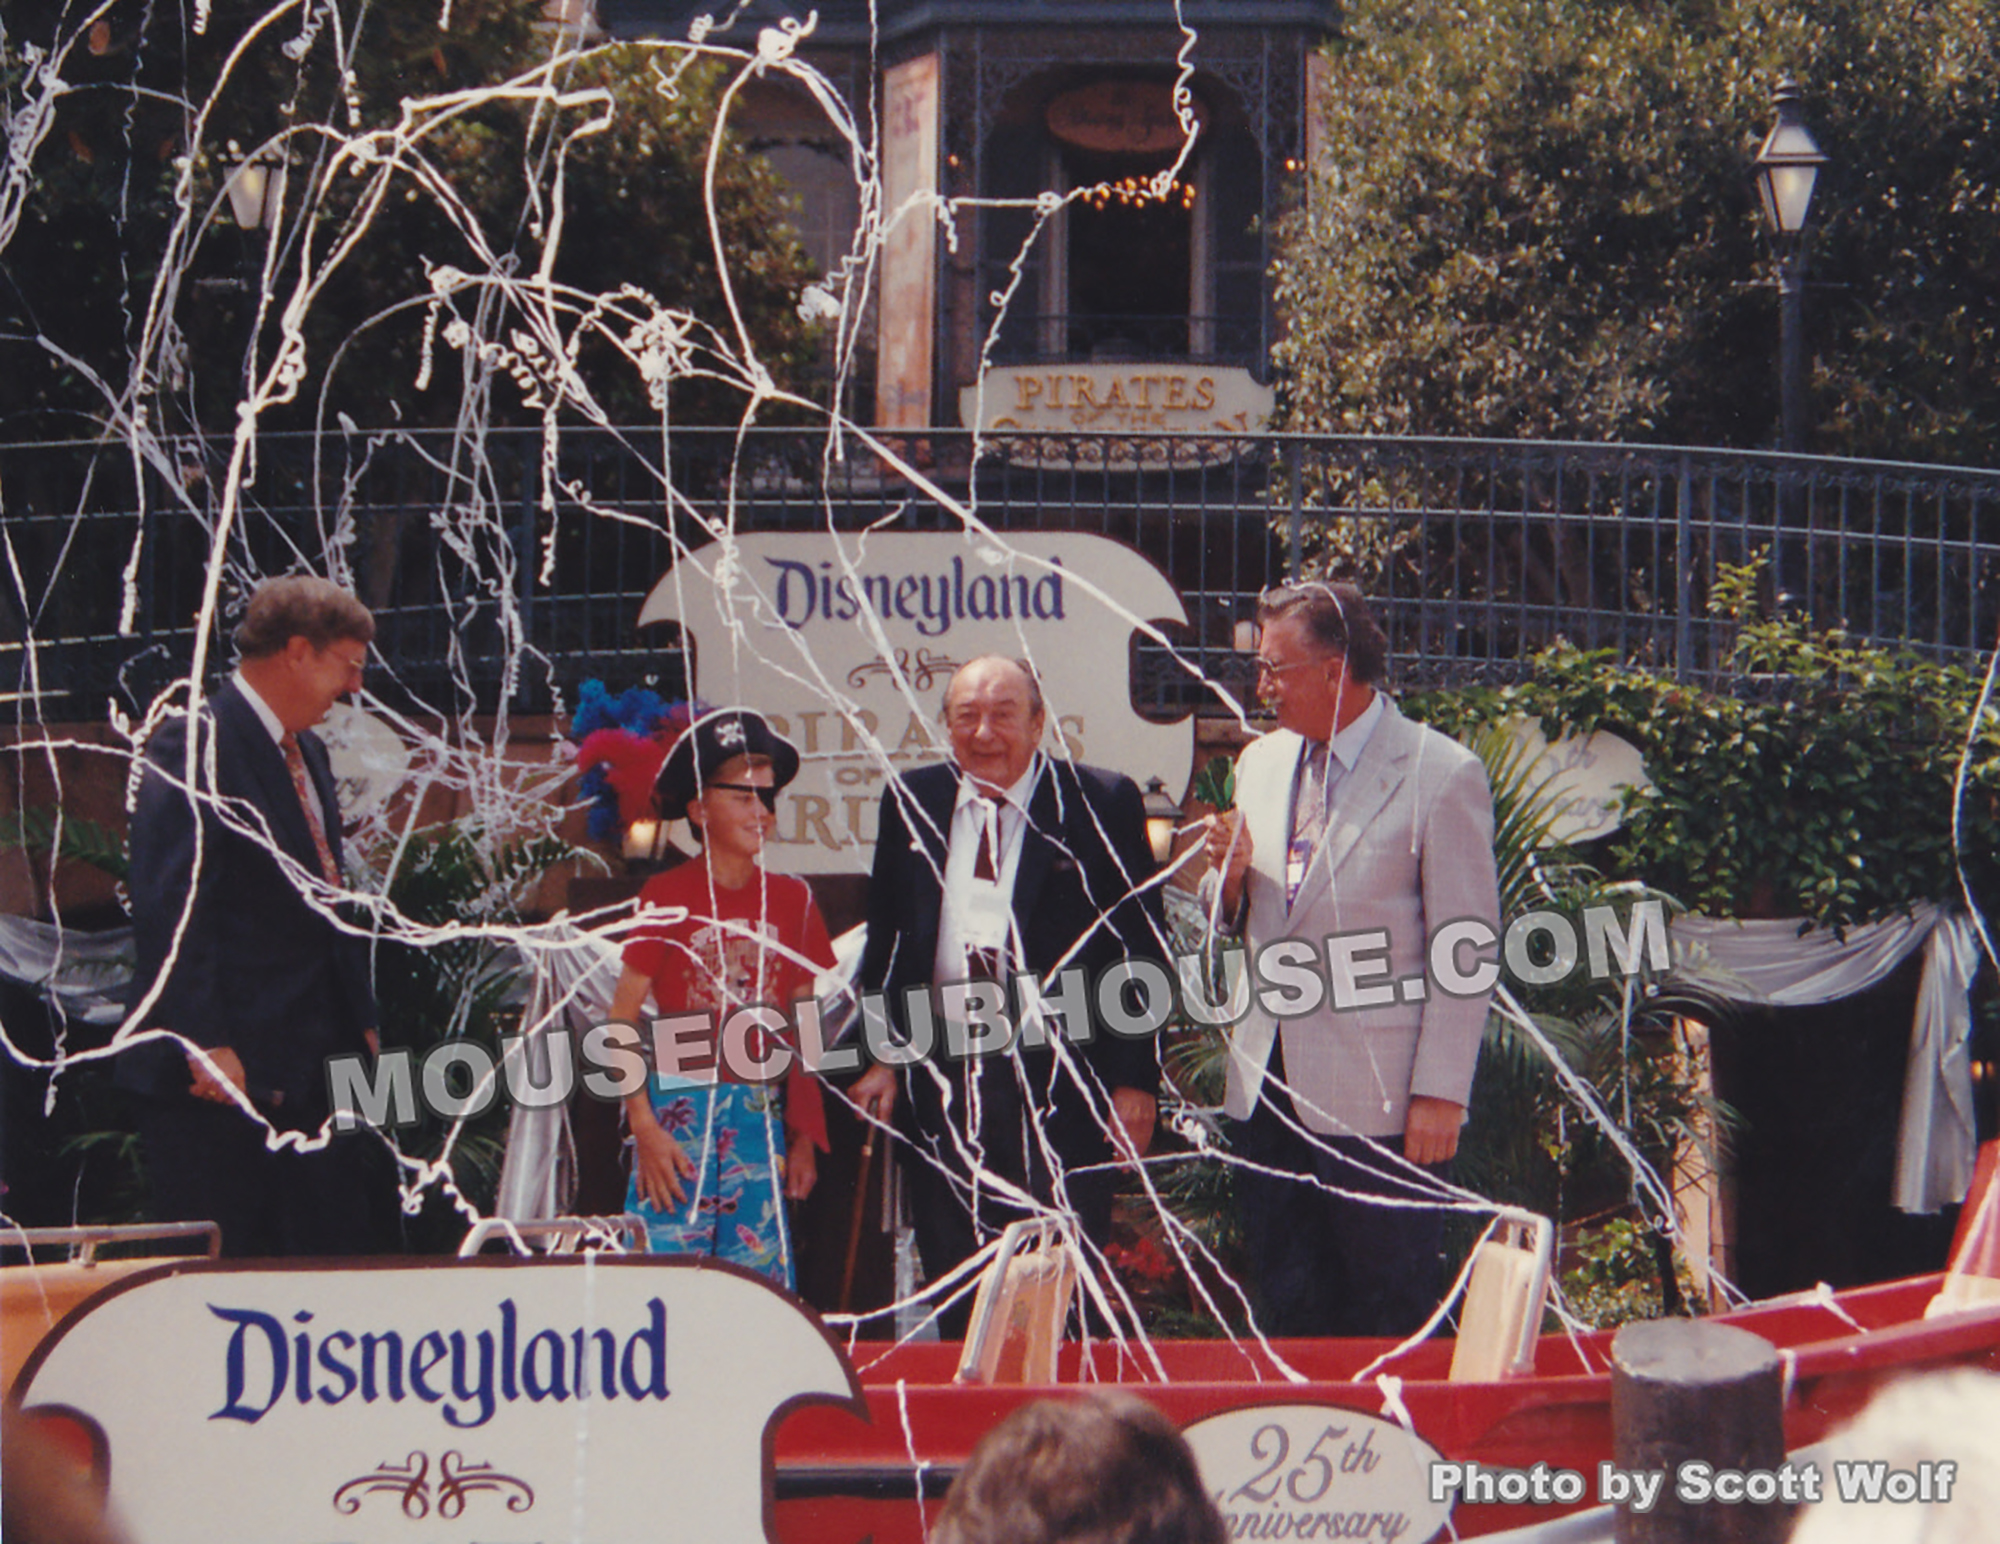 Pirates of the Caribbean contributors X Atencio and Marc Davis christen one of the boats